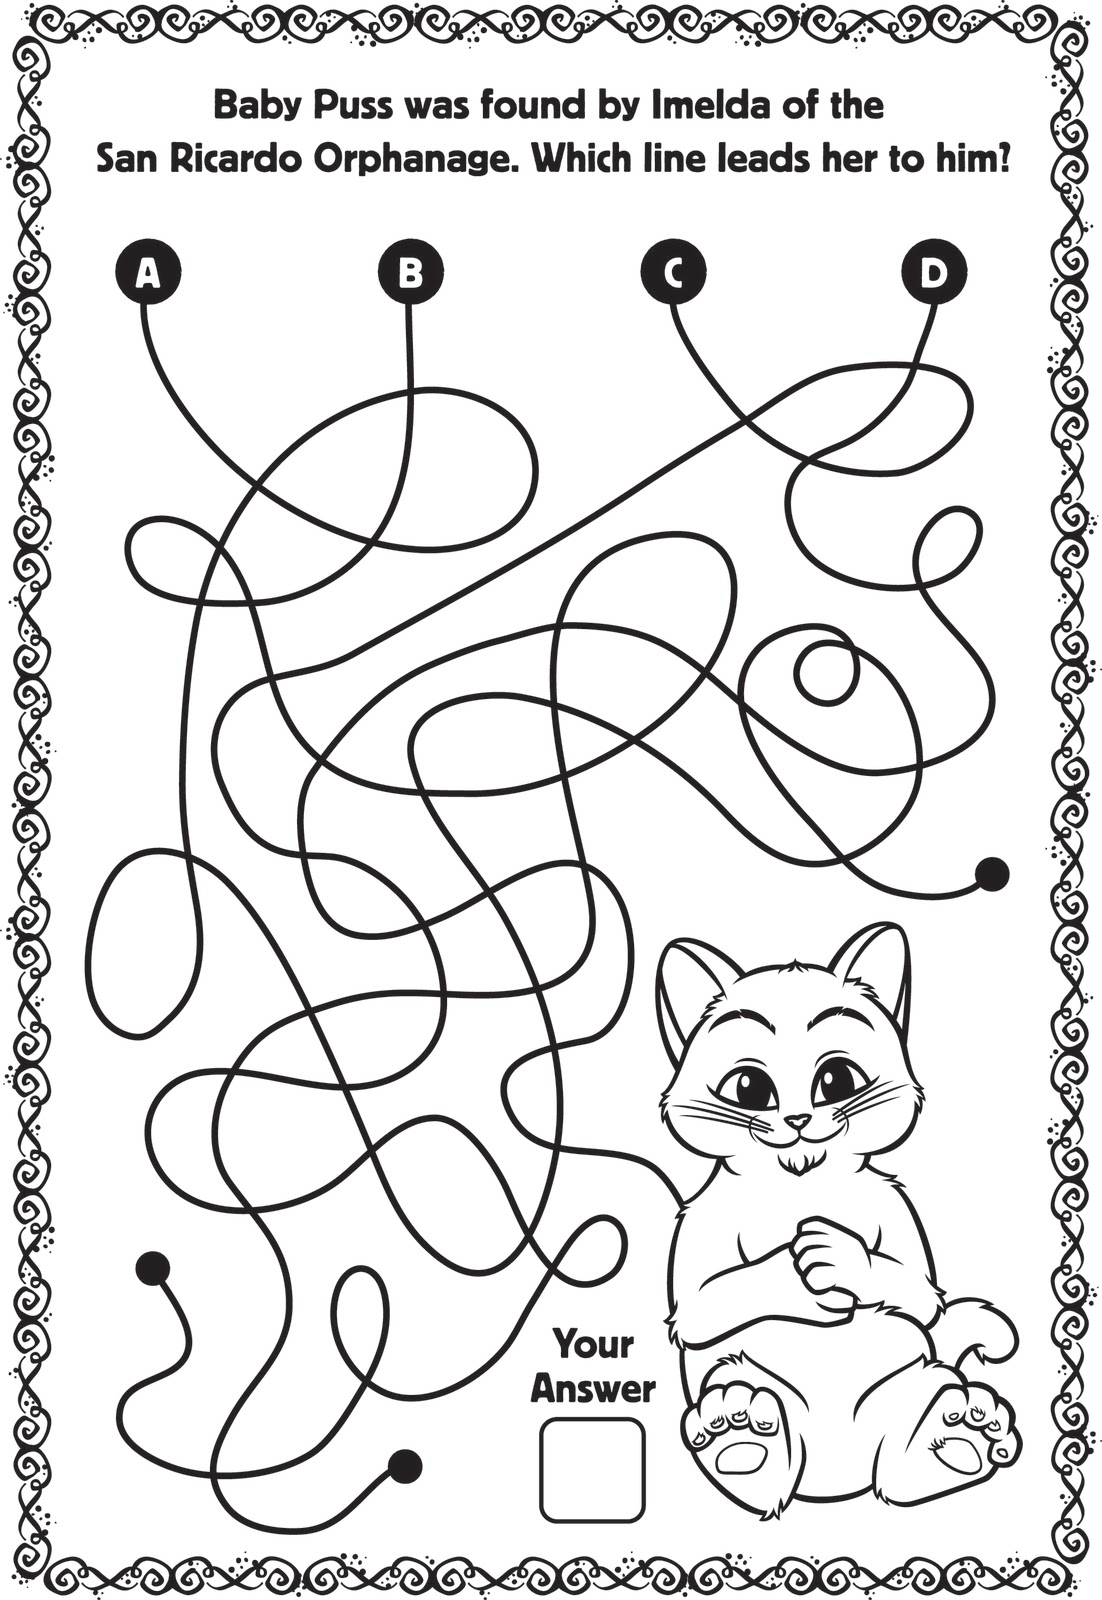 Here's some puss in boots activity sheets